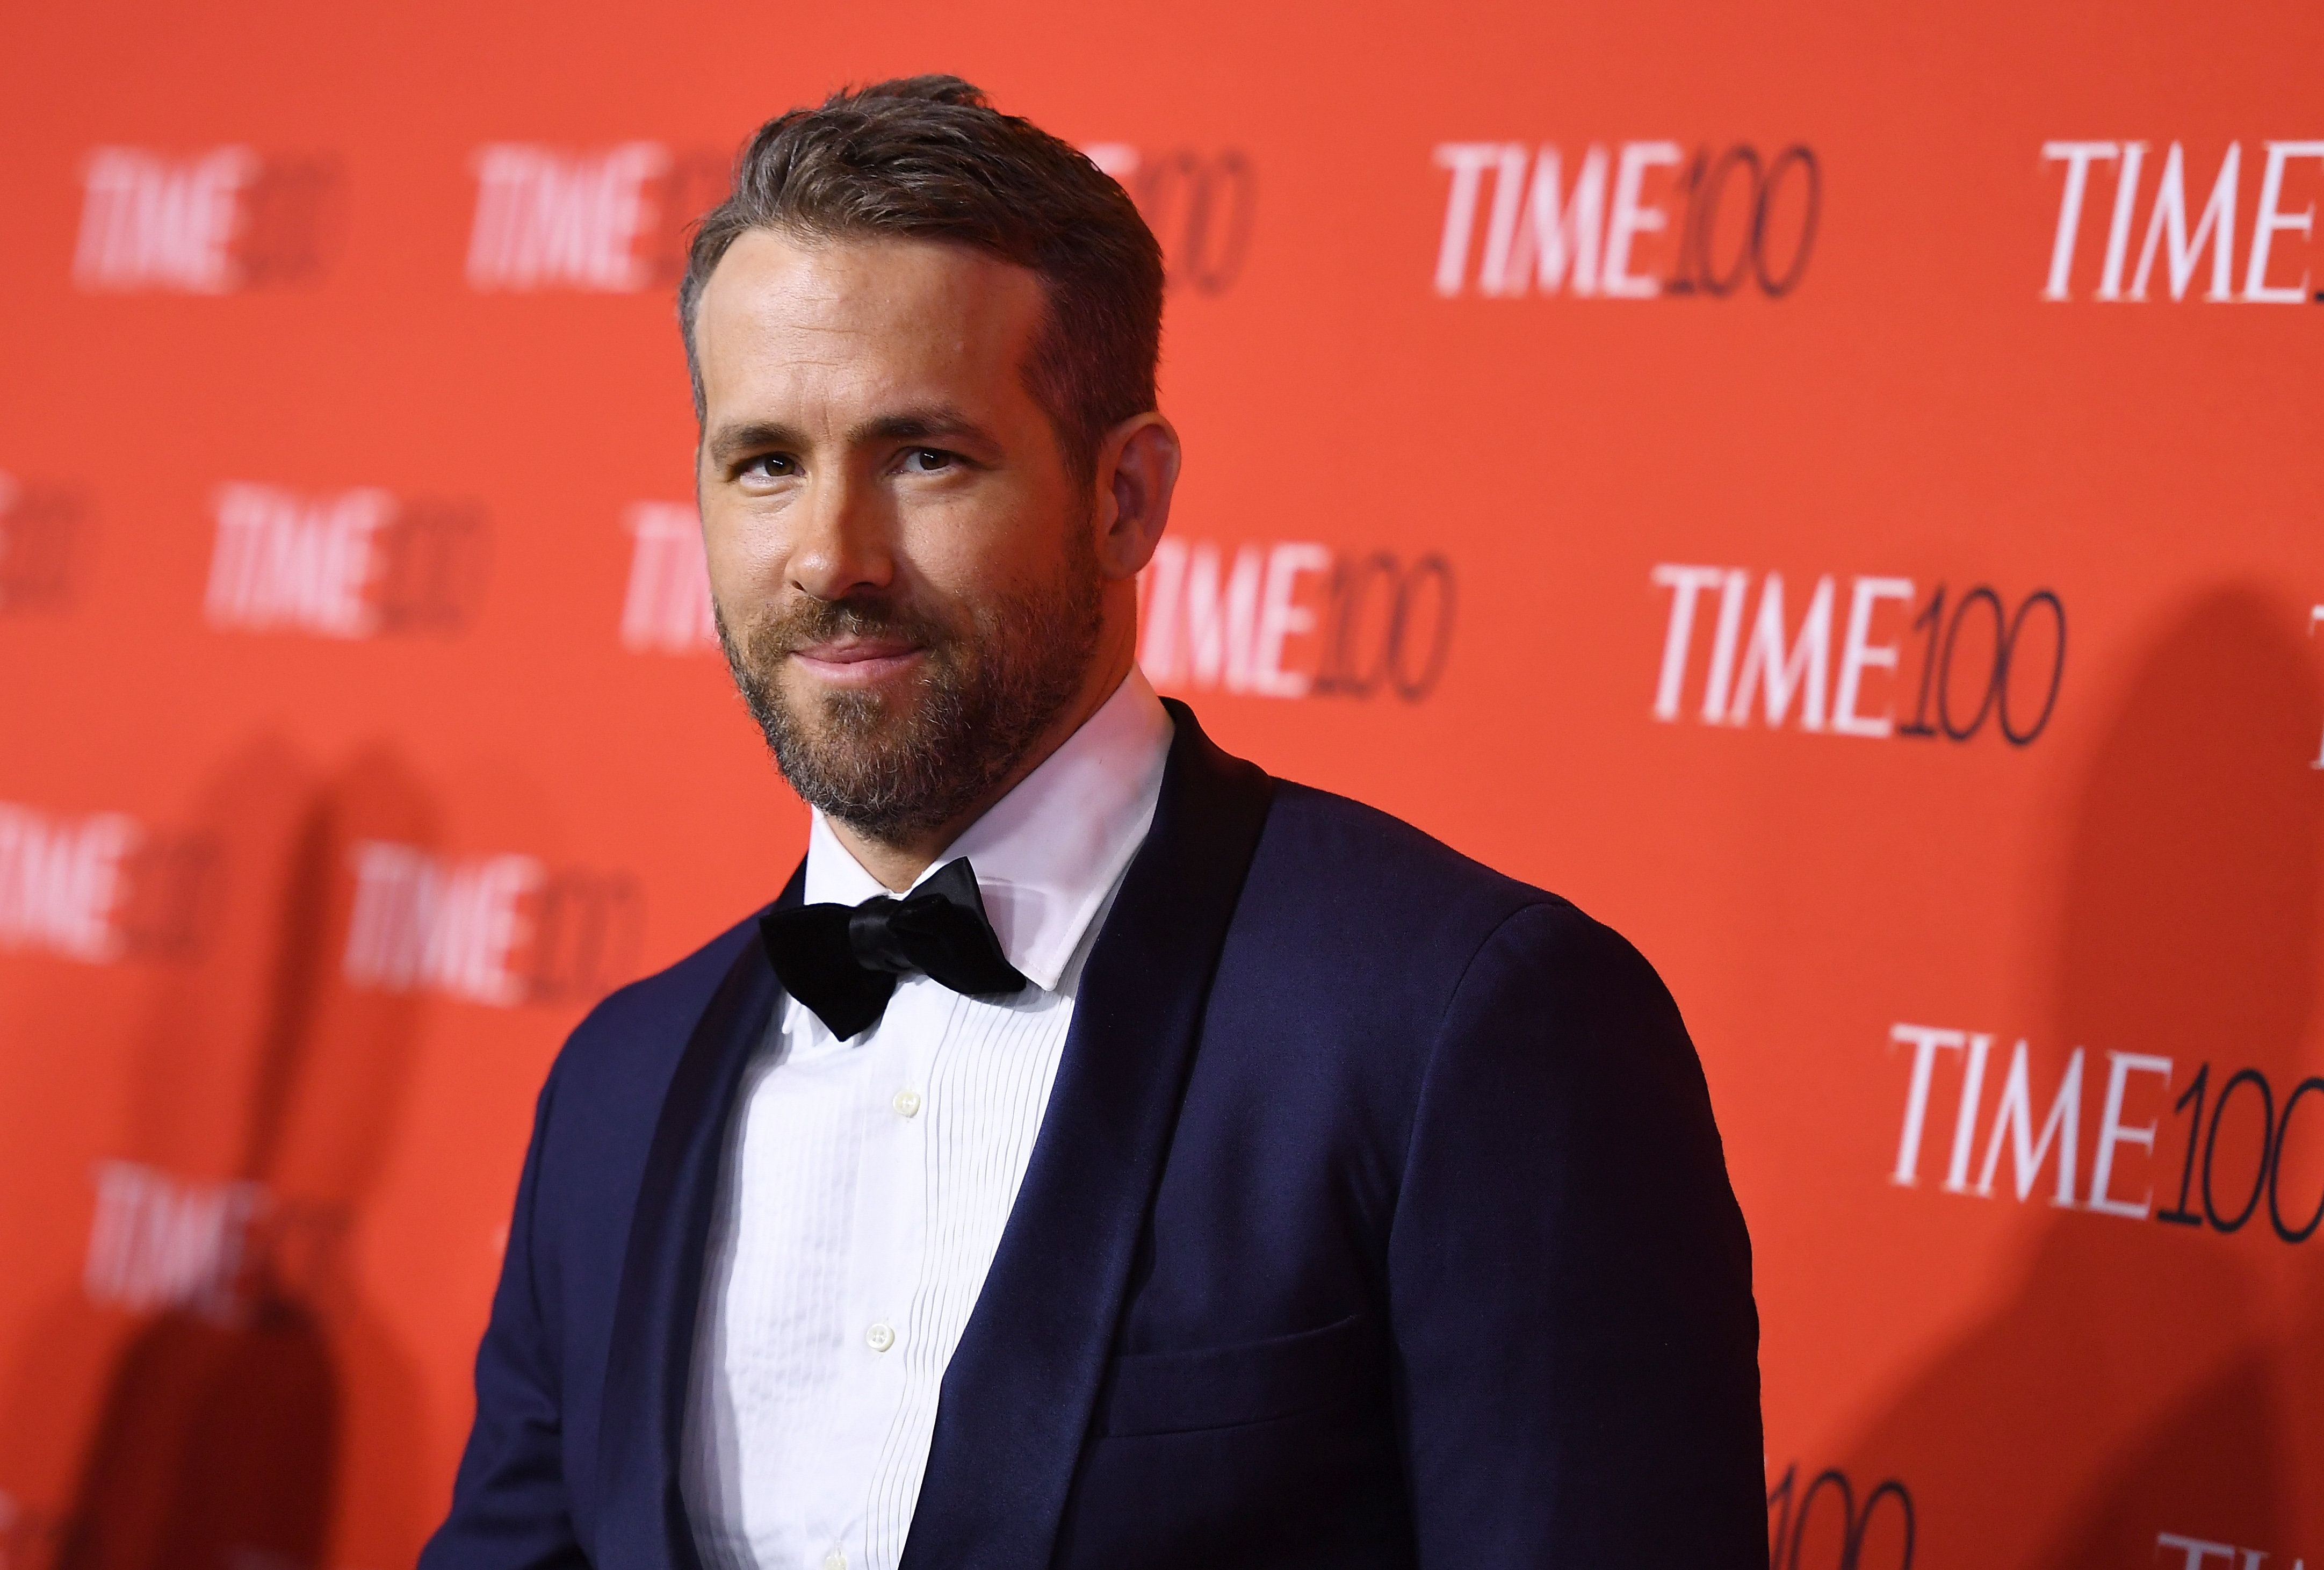 Ryan Reynolds attends the 2017 Time 100 Gala at Jazz at Lincoln Center on April 25, 2017 in New York City. / AFP PHOTO / ANGELA WEISS        (Photo credit should read ANGELA WEISS/AFP/Getty Images)